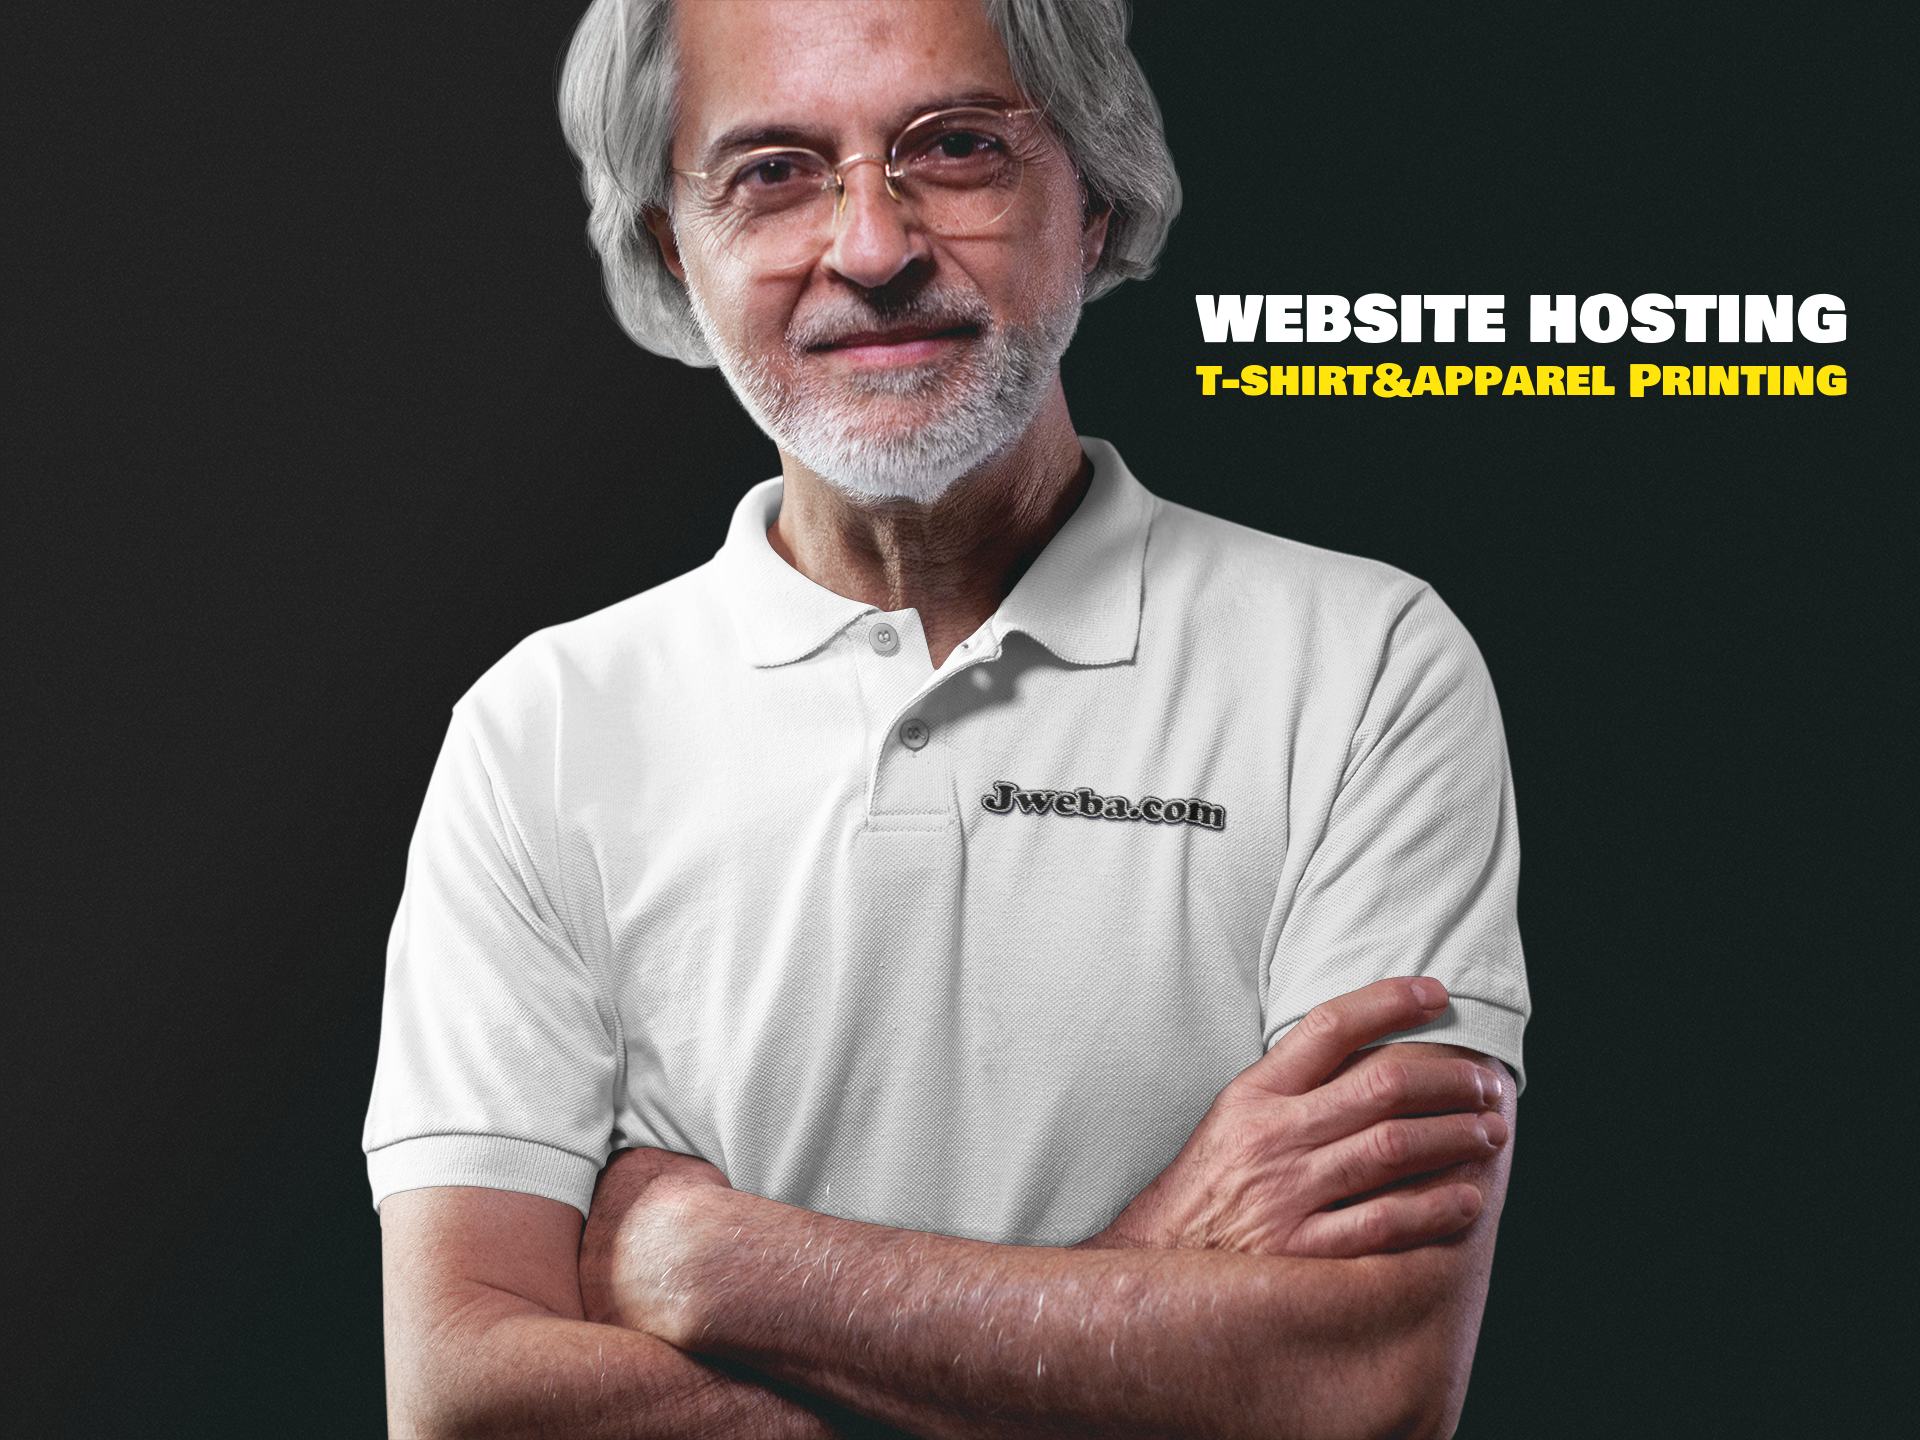 Jweba Website Hosting & Apparel Printing